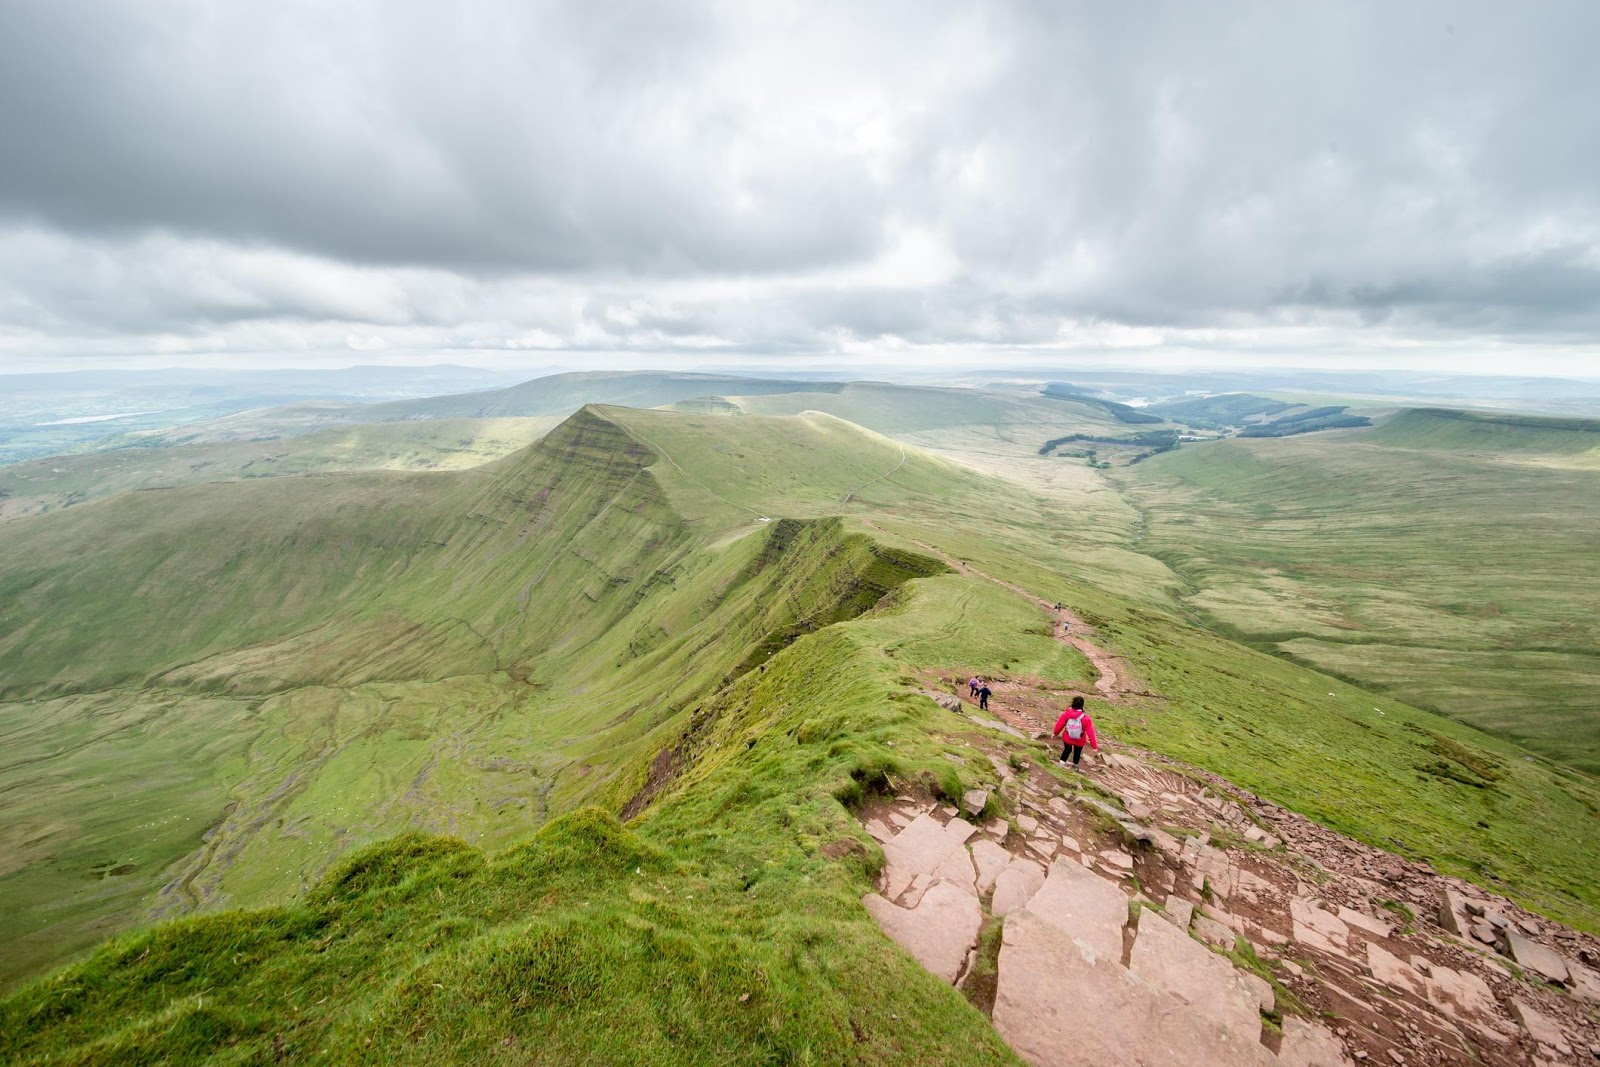 Hikers walking along the top ridge of Pen y Fan in the Brecon Beacons.